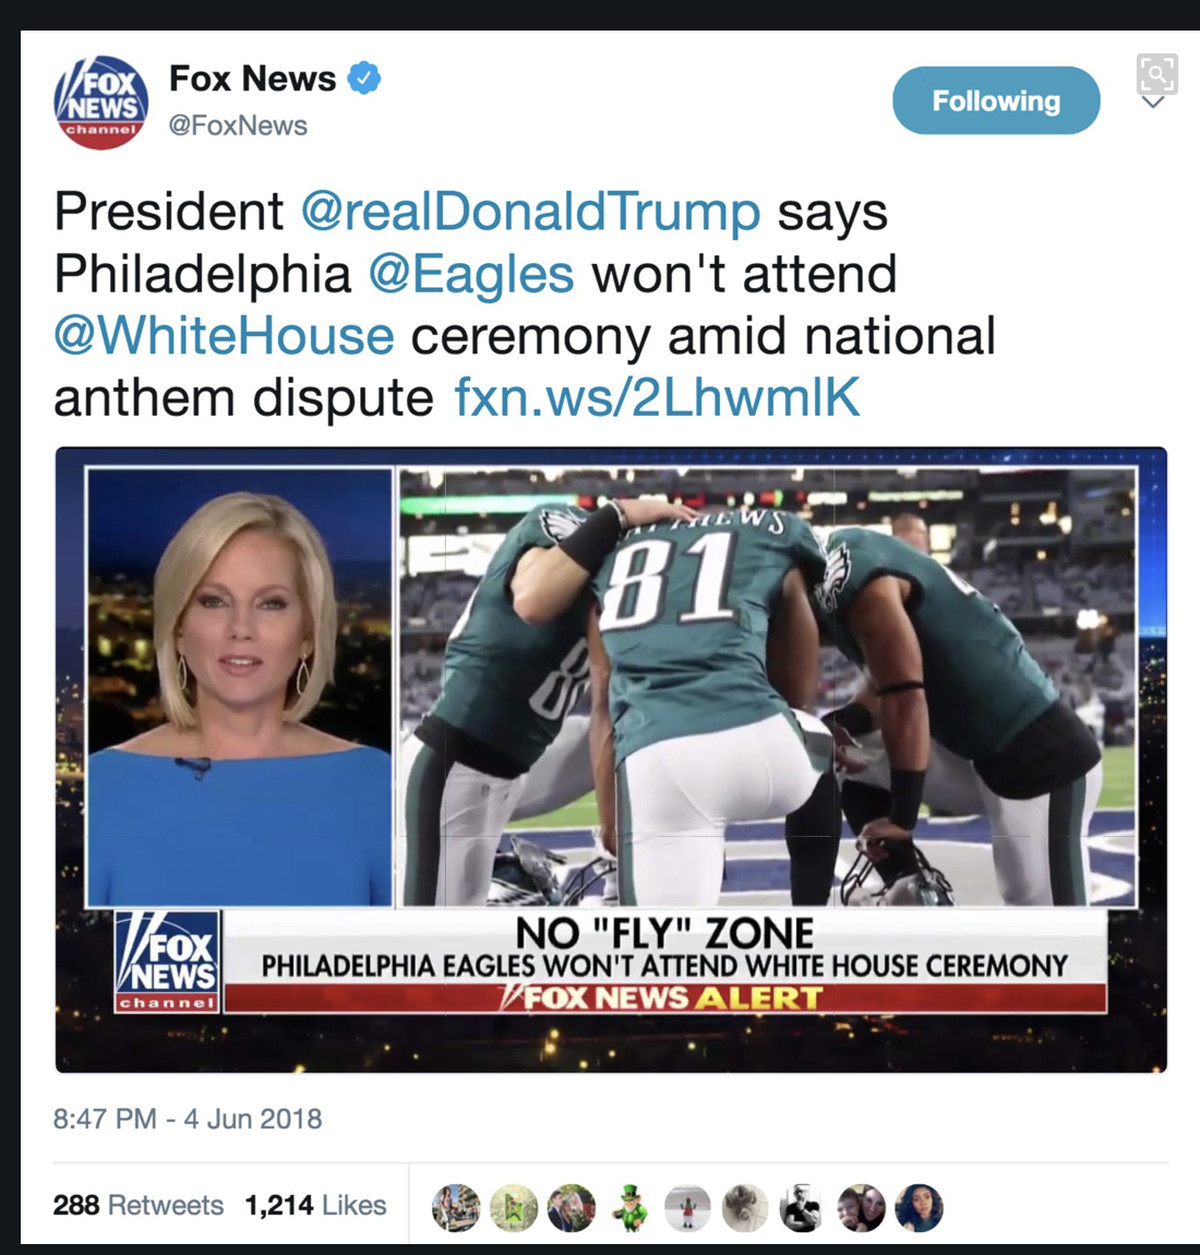 Ex-Philadelphia Eagles player defends former team: Trump made a poor decision